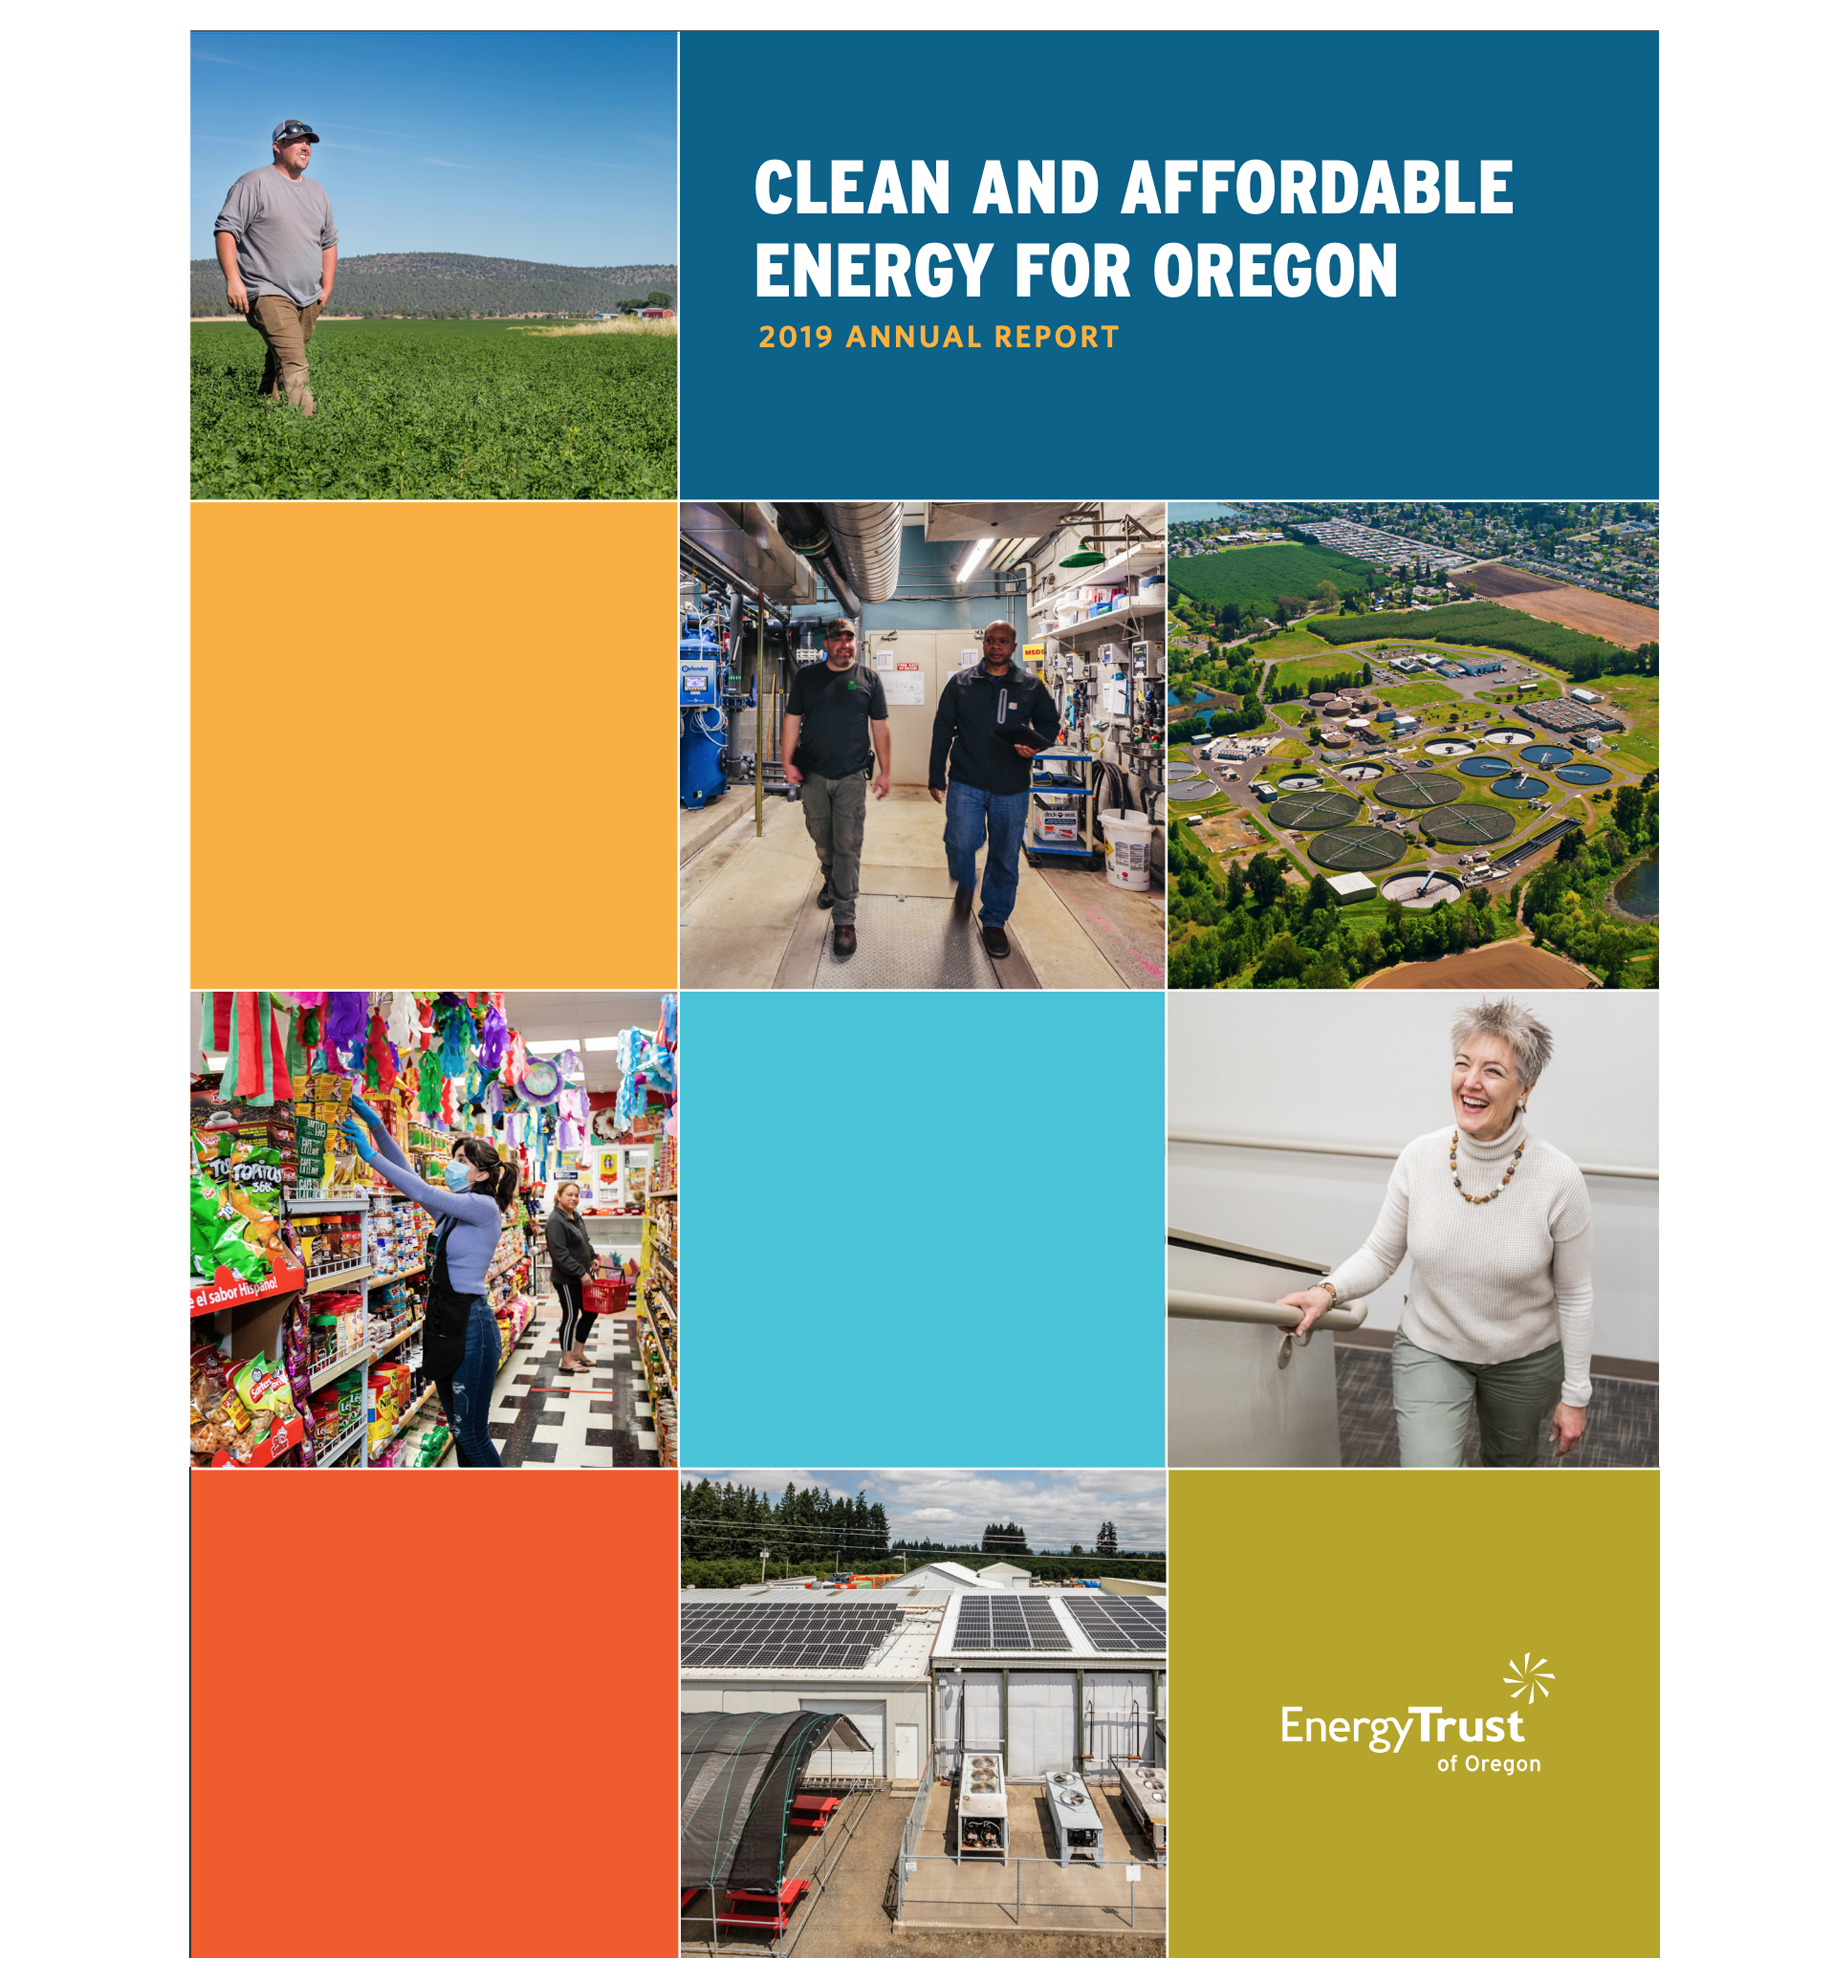 Screen shot of the annual report in print, grid of squares on a page with people's faces alternating with text calling out what energy trust does.